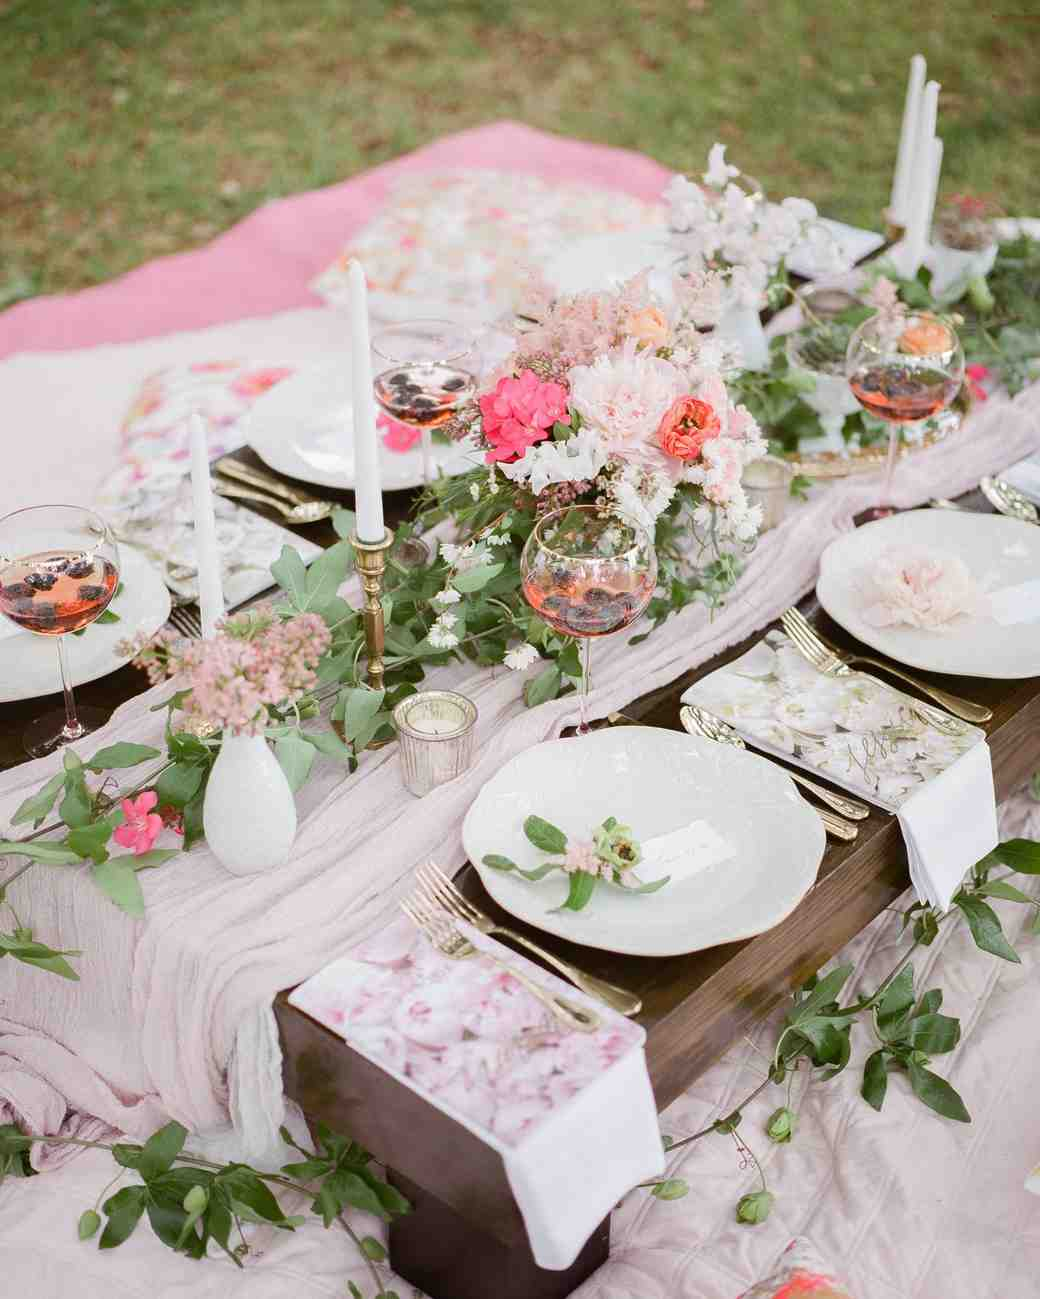 Outdoor Bridal Shower Ideas Part - 15: Outdoor Picnic Spread